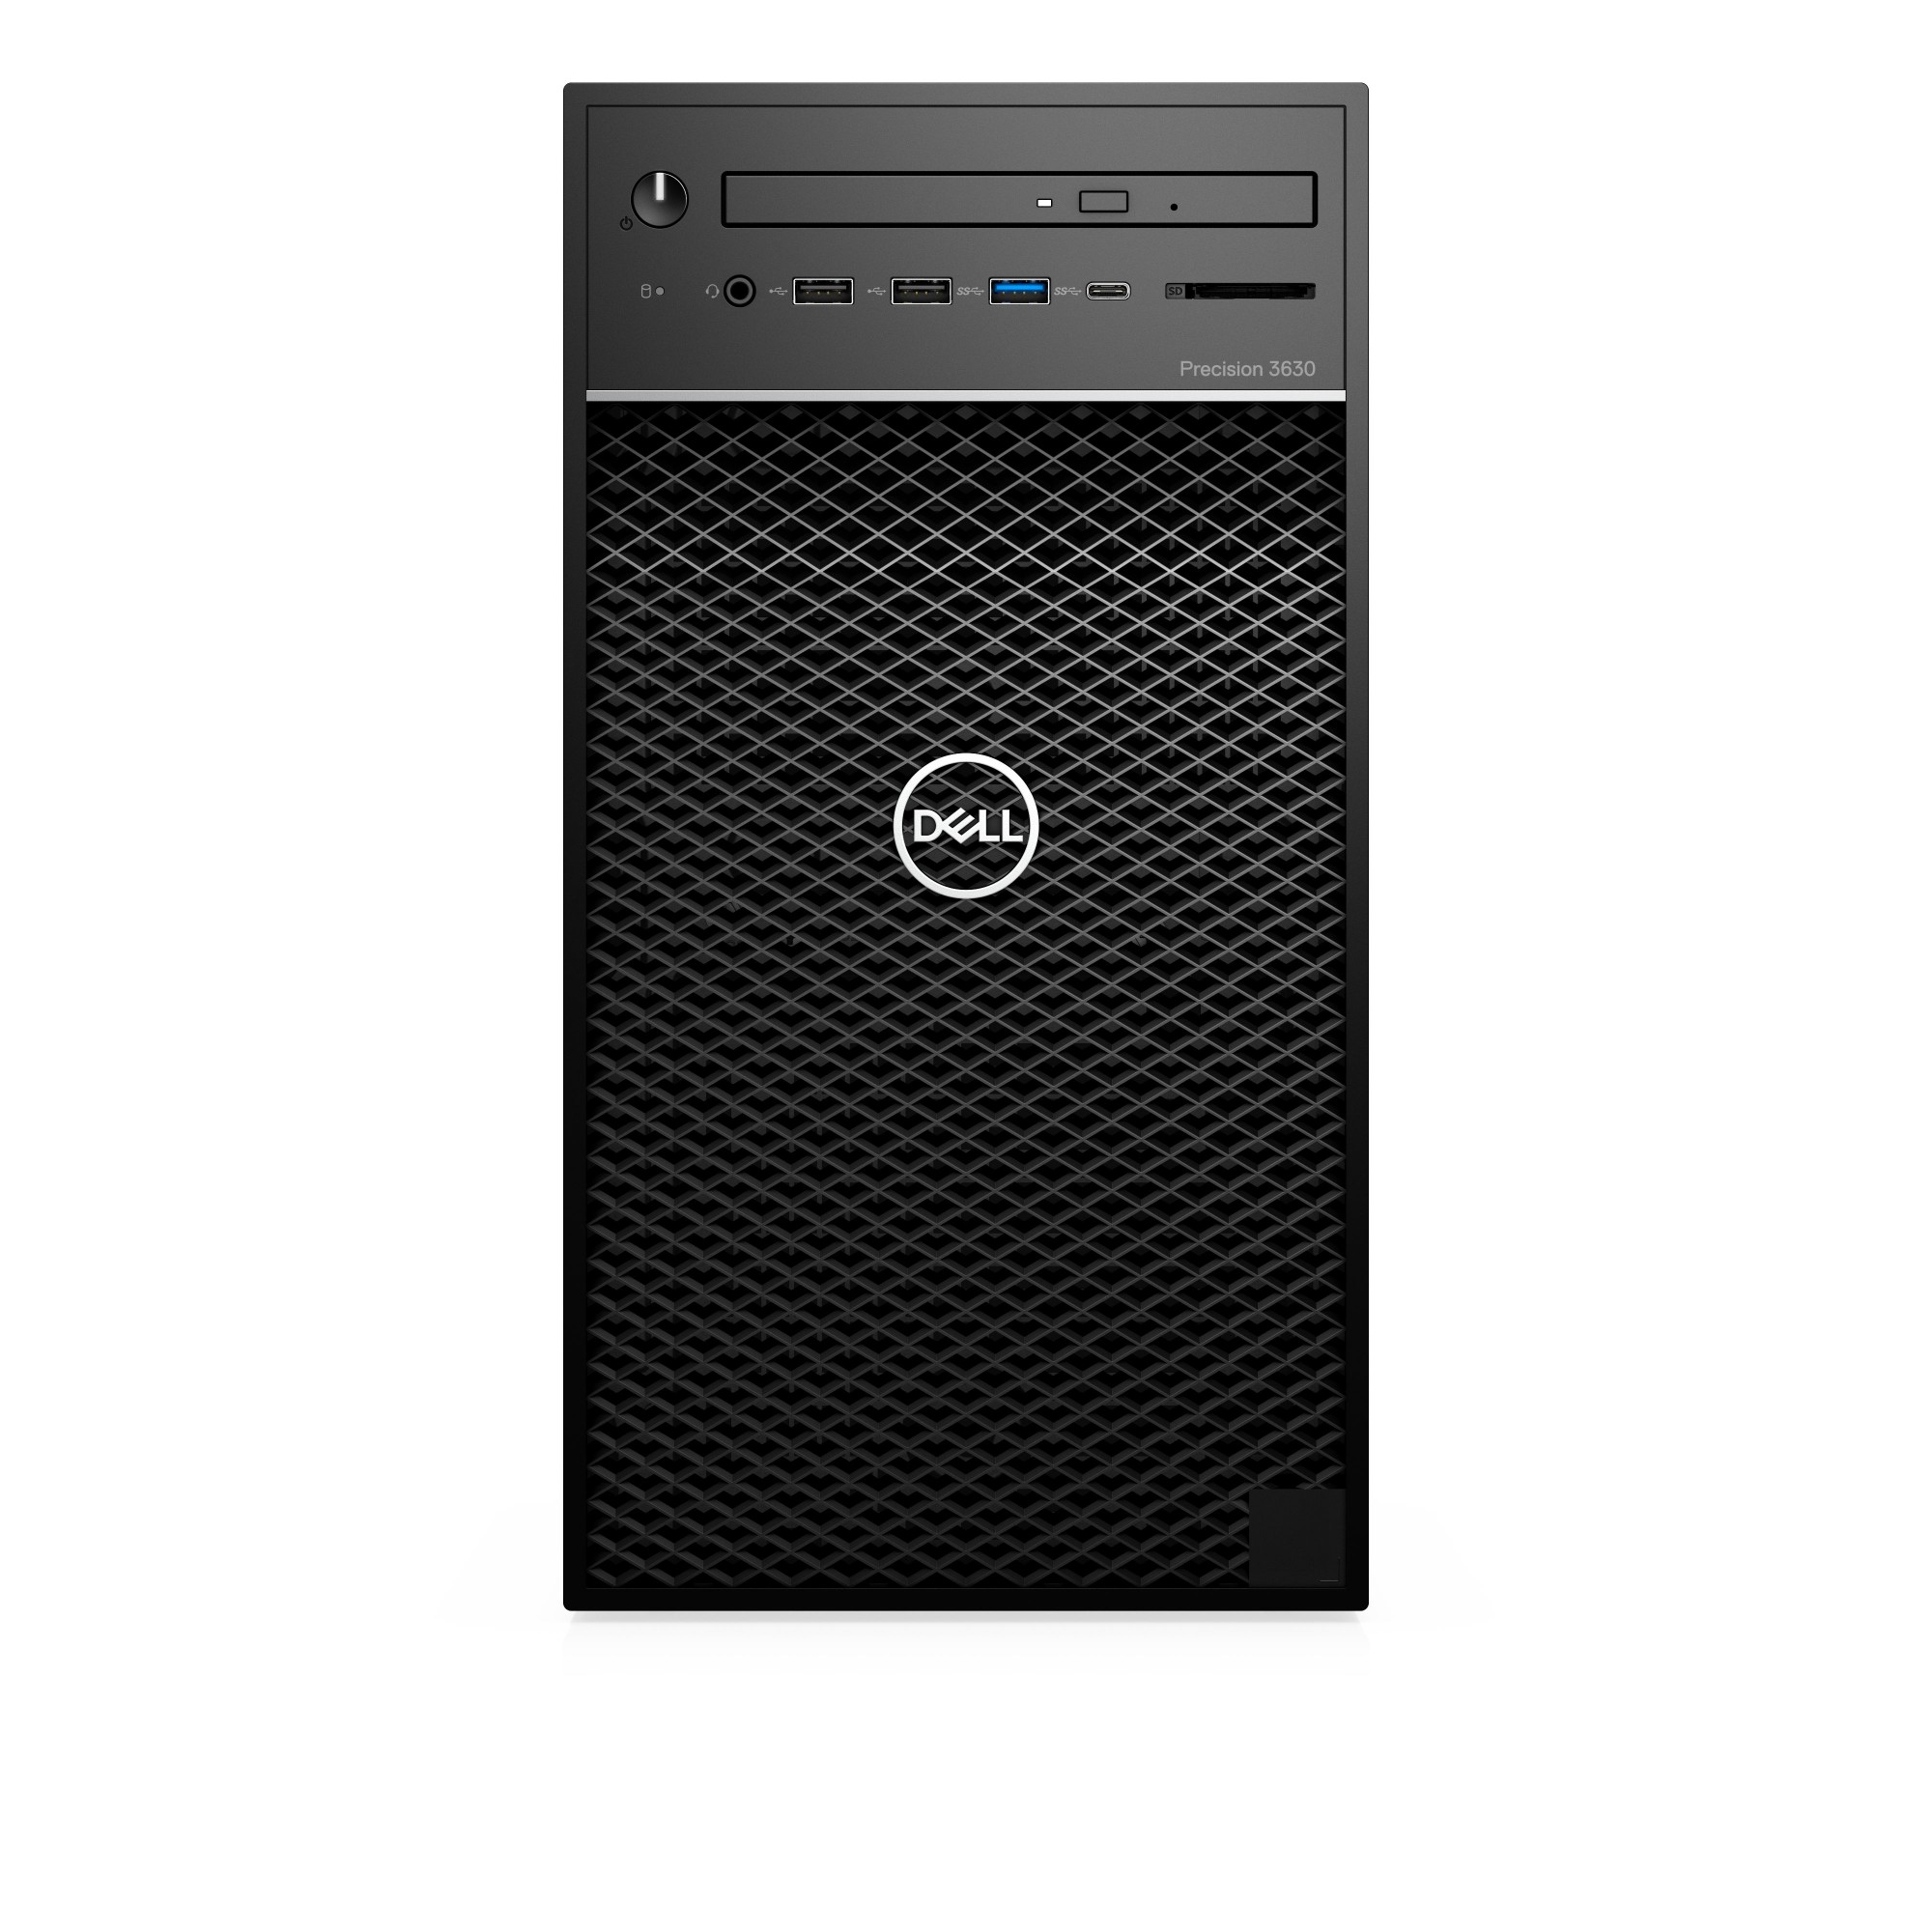 DELL Precision T3630 8th gen Intel® Core™ i5 i5-8500 8 GB DDR4-SDRAM 256 GB SSD Black Tower Workstation